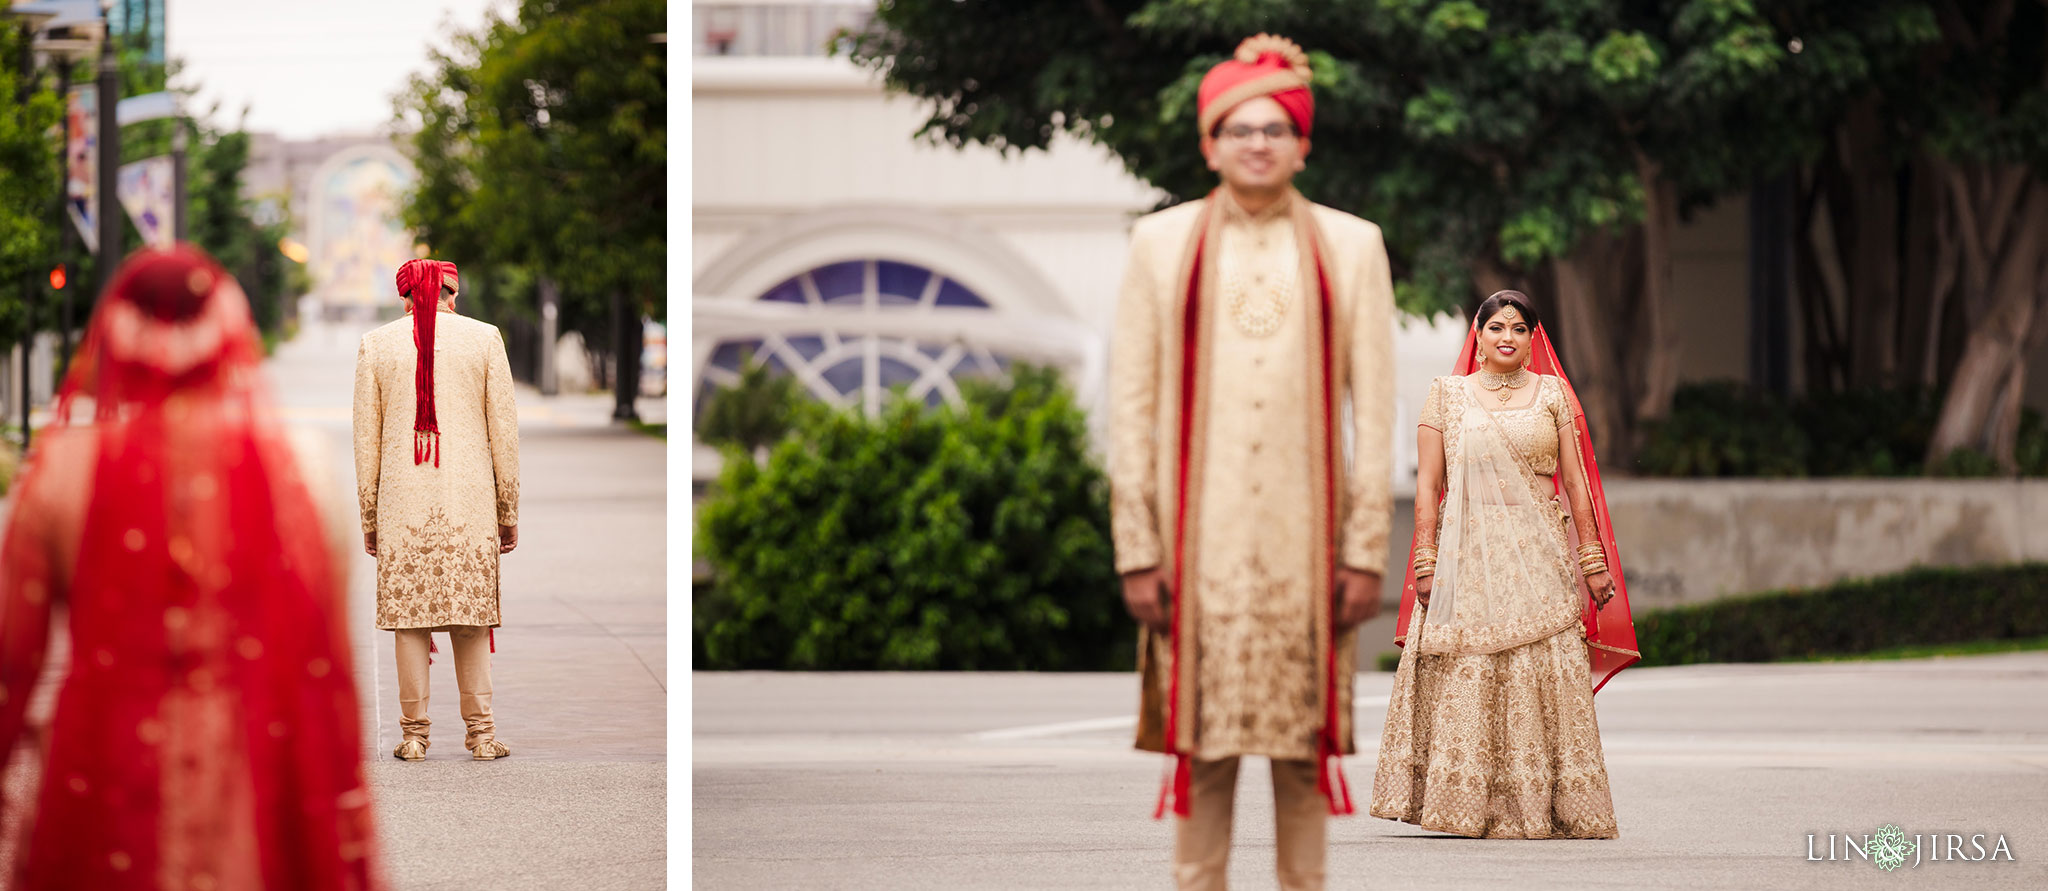 017 Long Beach Performing Arts Center First Look Indian Wedding Photography